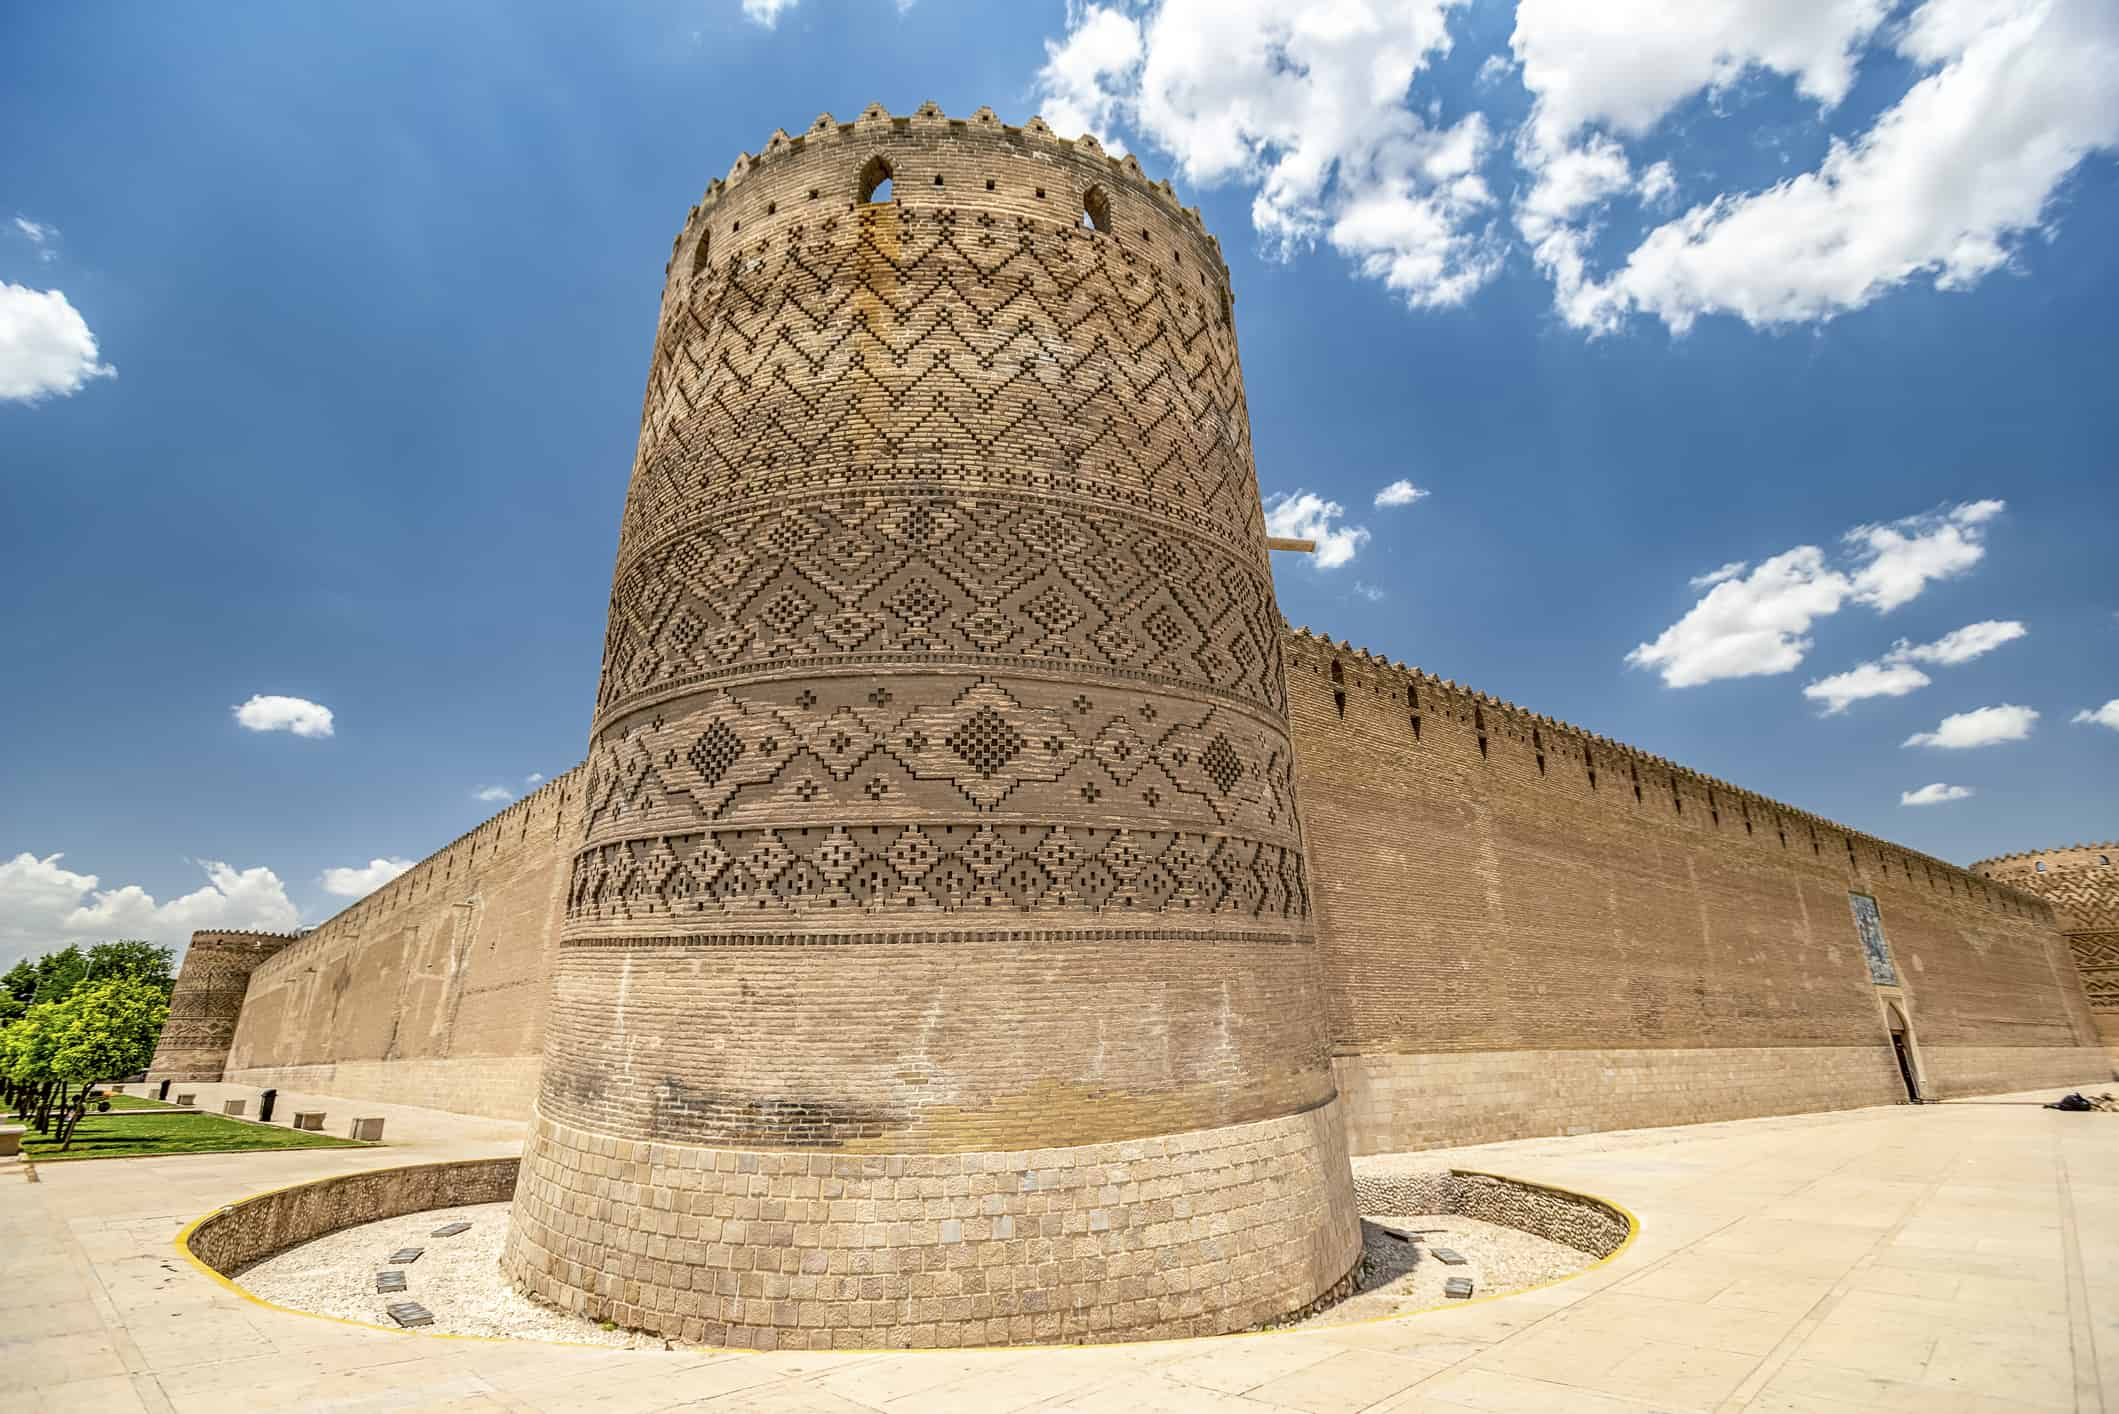 View of the ancient fortress of Karim Khan Citadel in the center of Shiraz, Fars Province ofIran